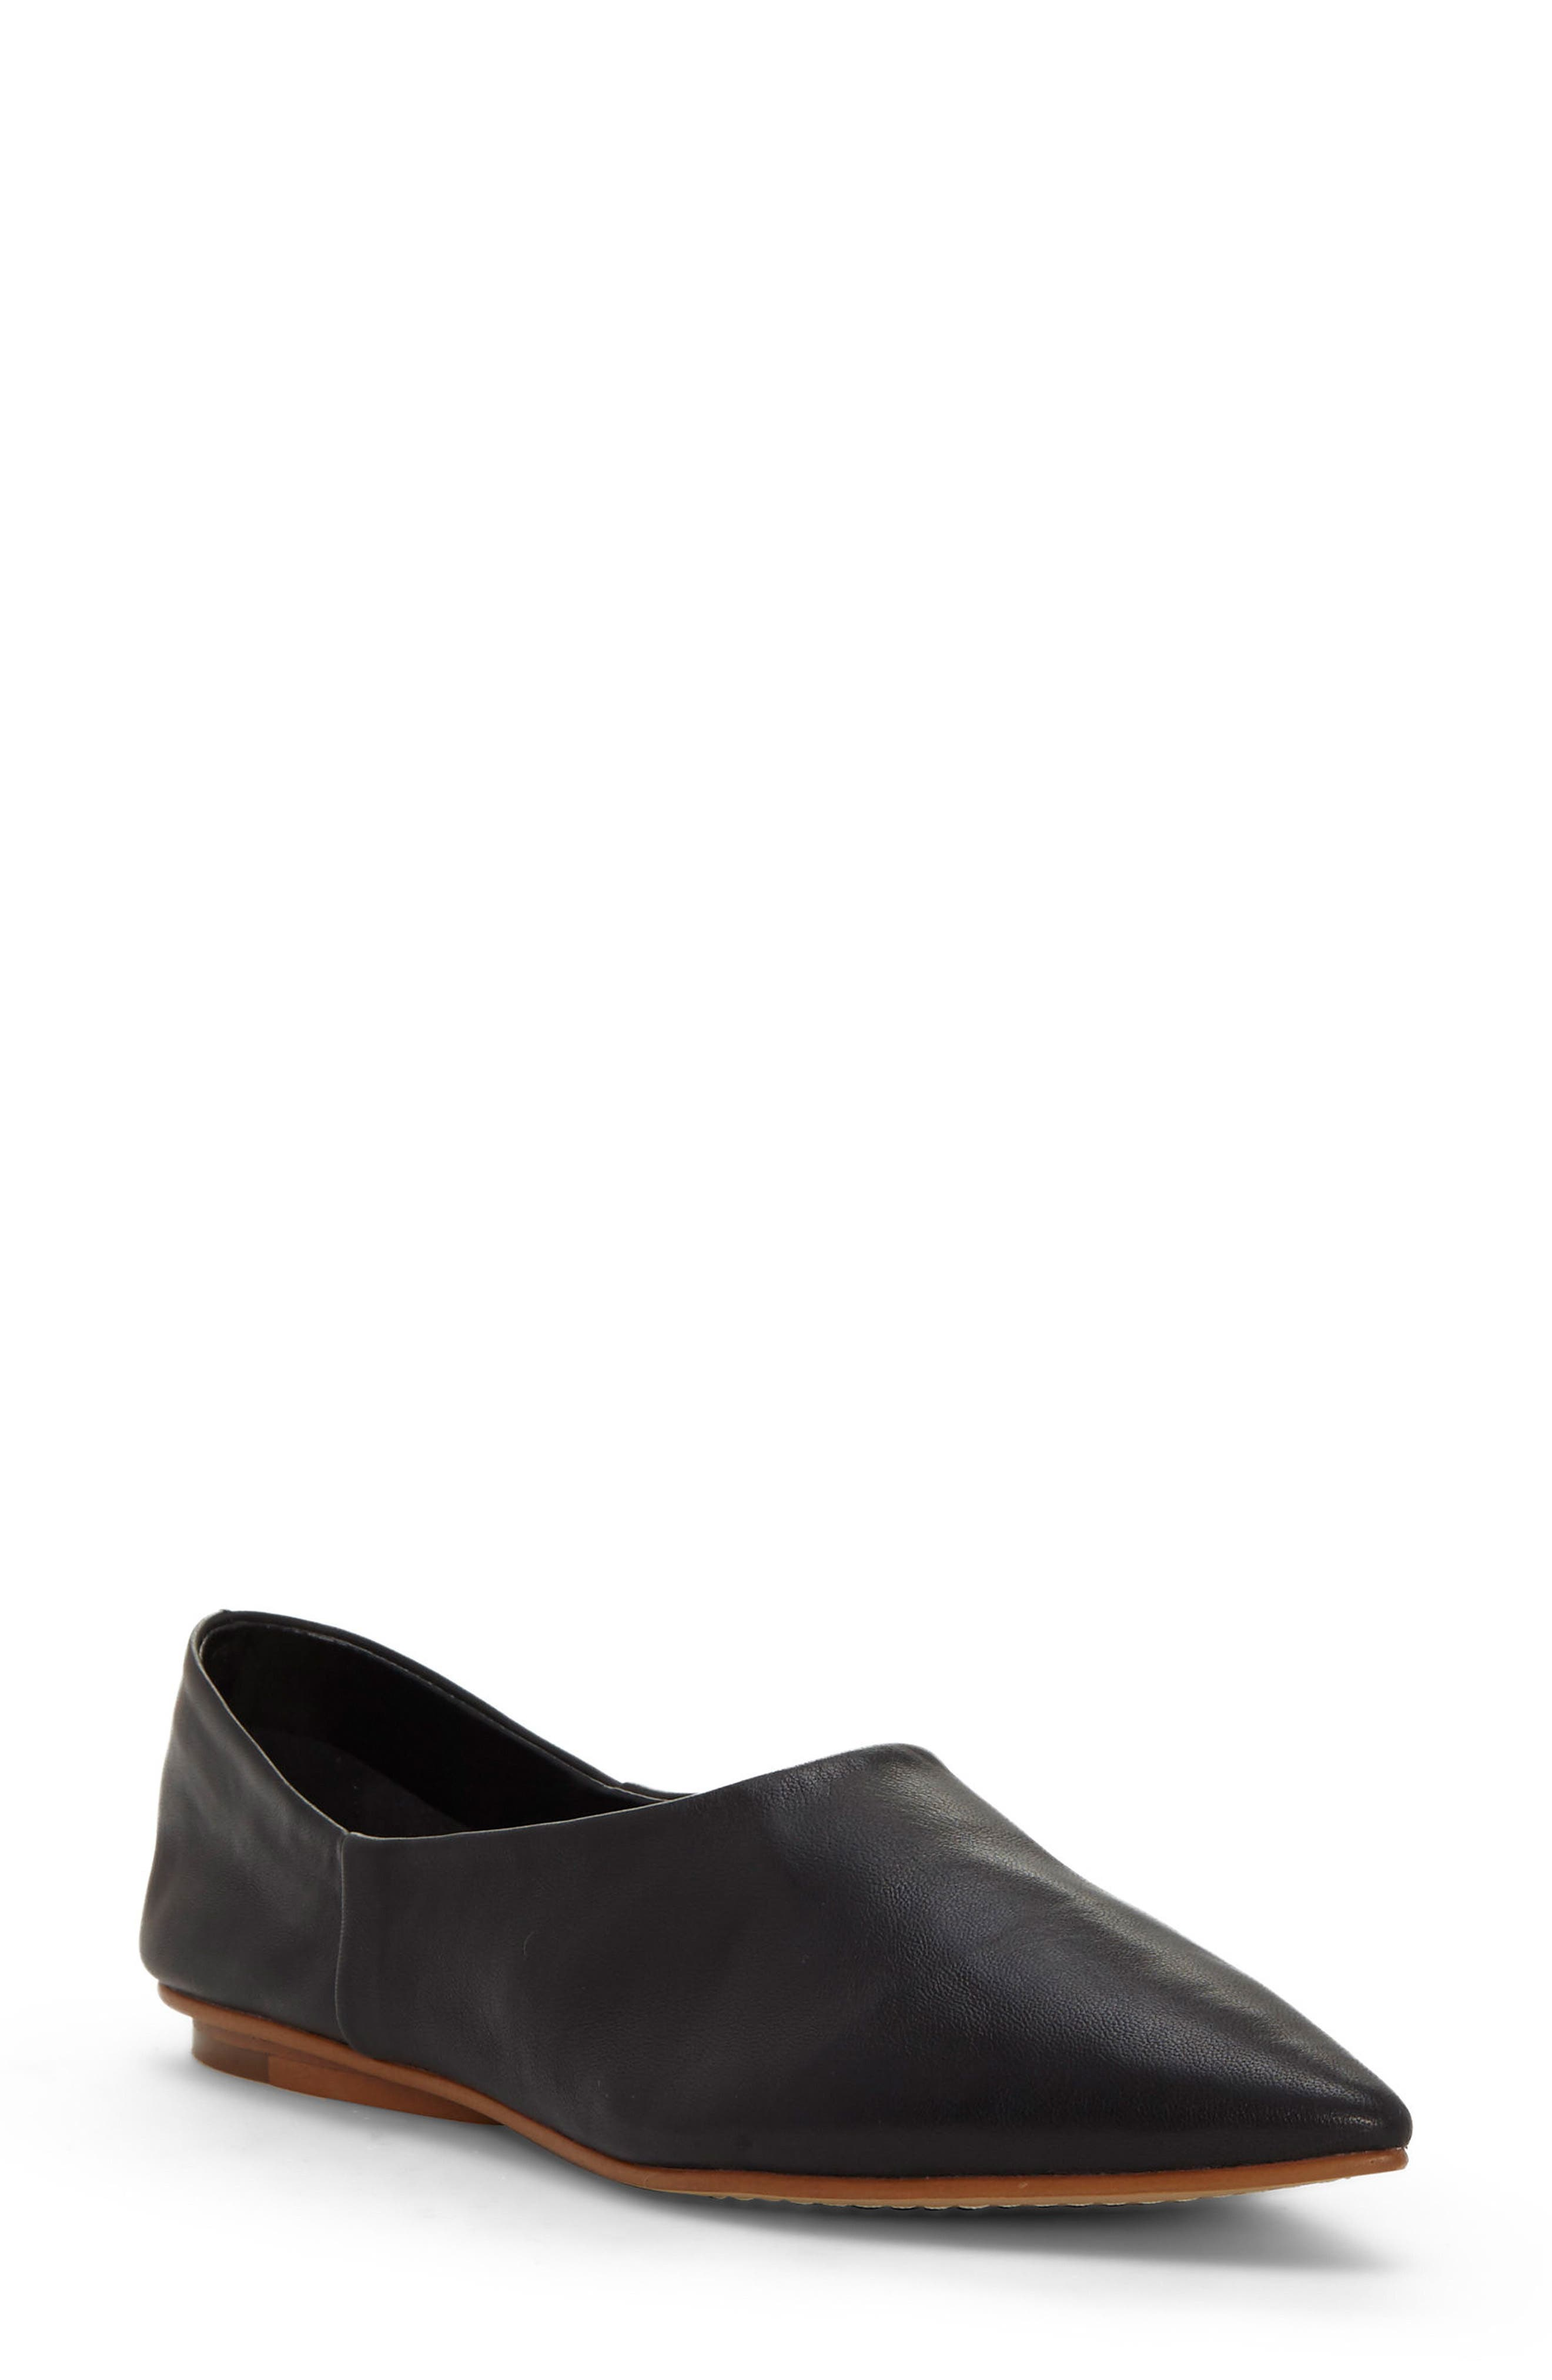 Main Image - Vince Camuto Stanta Pointy Toe Flat